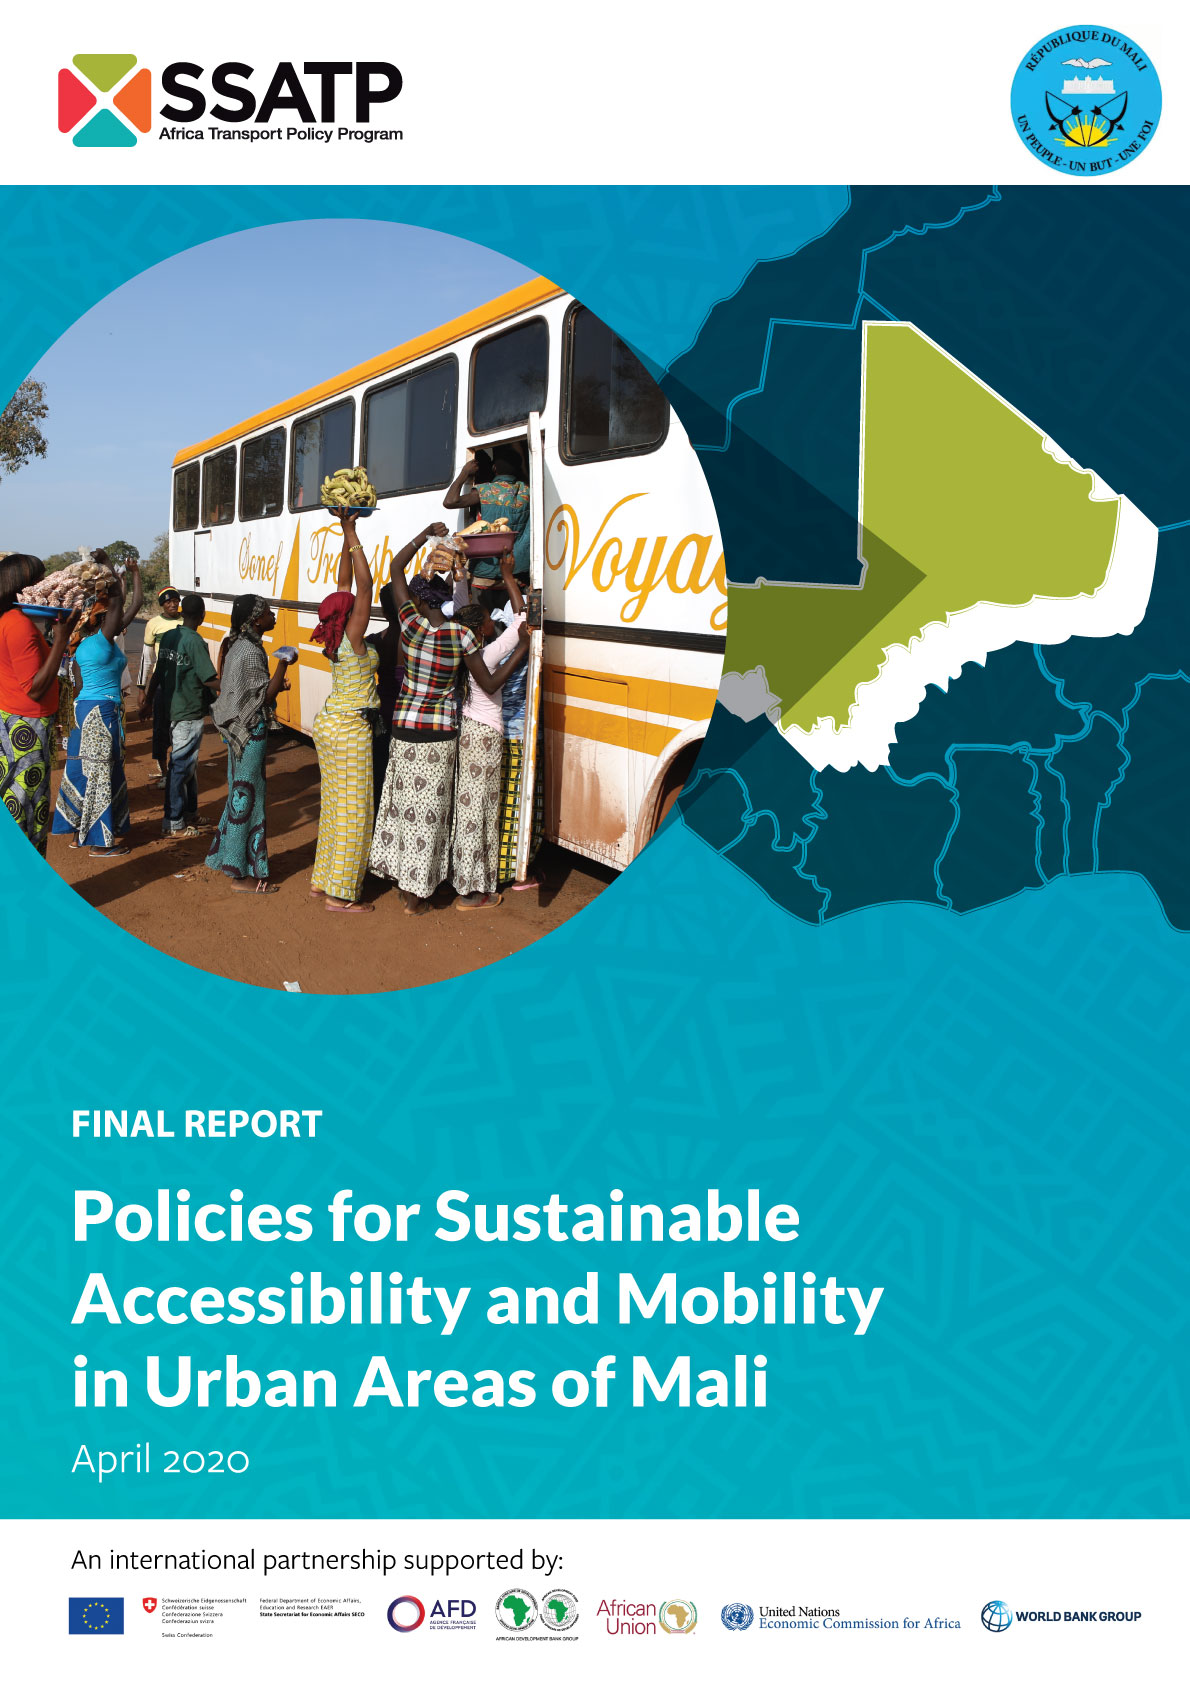 Policies for Sustainable Accessibility and Mobility in Urban Areas of Mali - Diagnostic Study